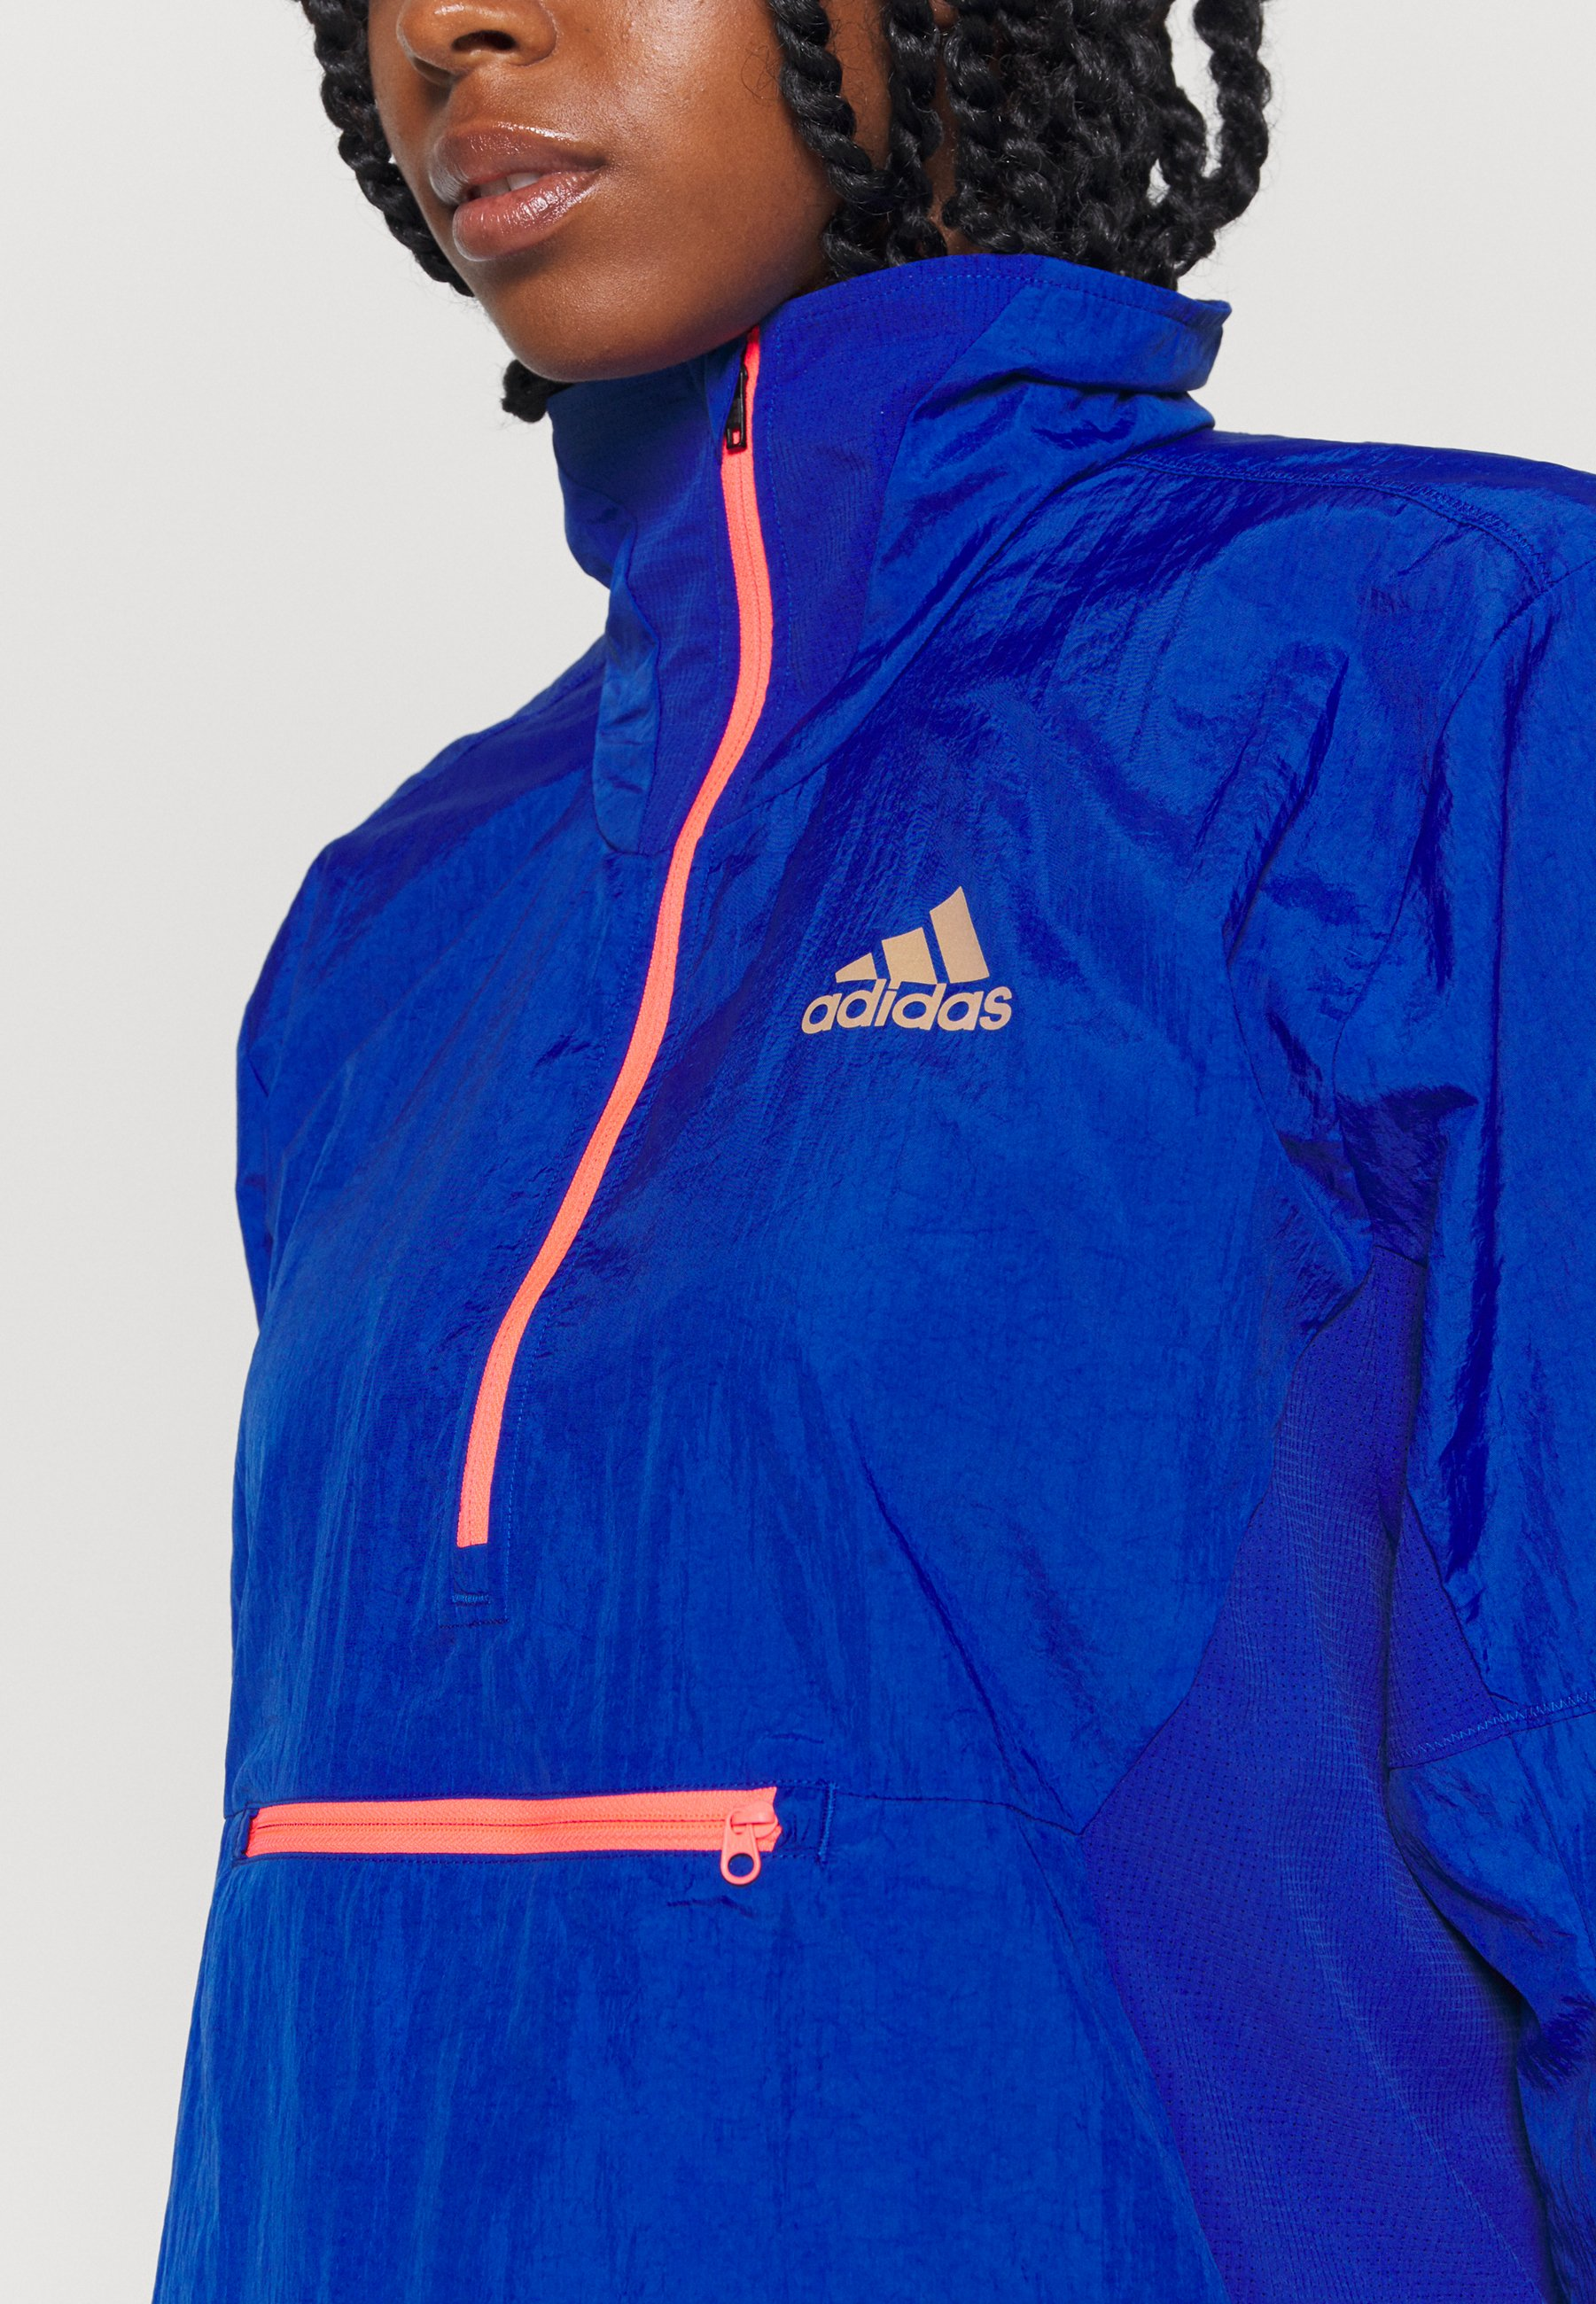 Amazing Price Women's Clothing adidas Performance ADAPT JACKET Sports jacket royal blue oRrfR5xgz